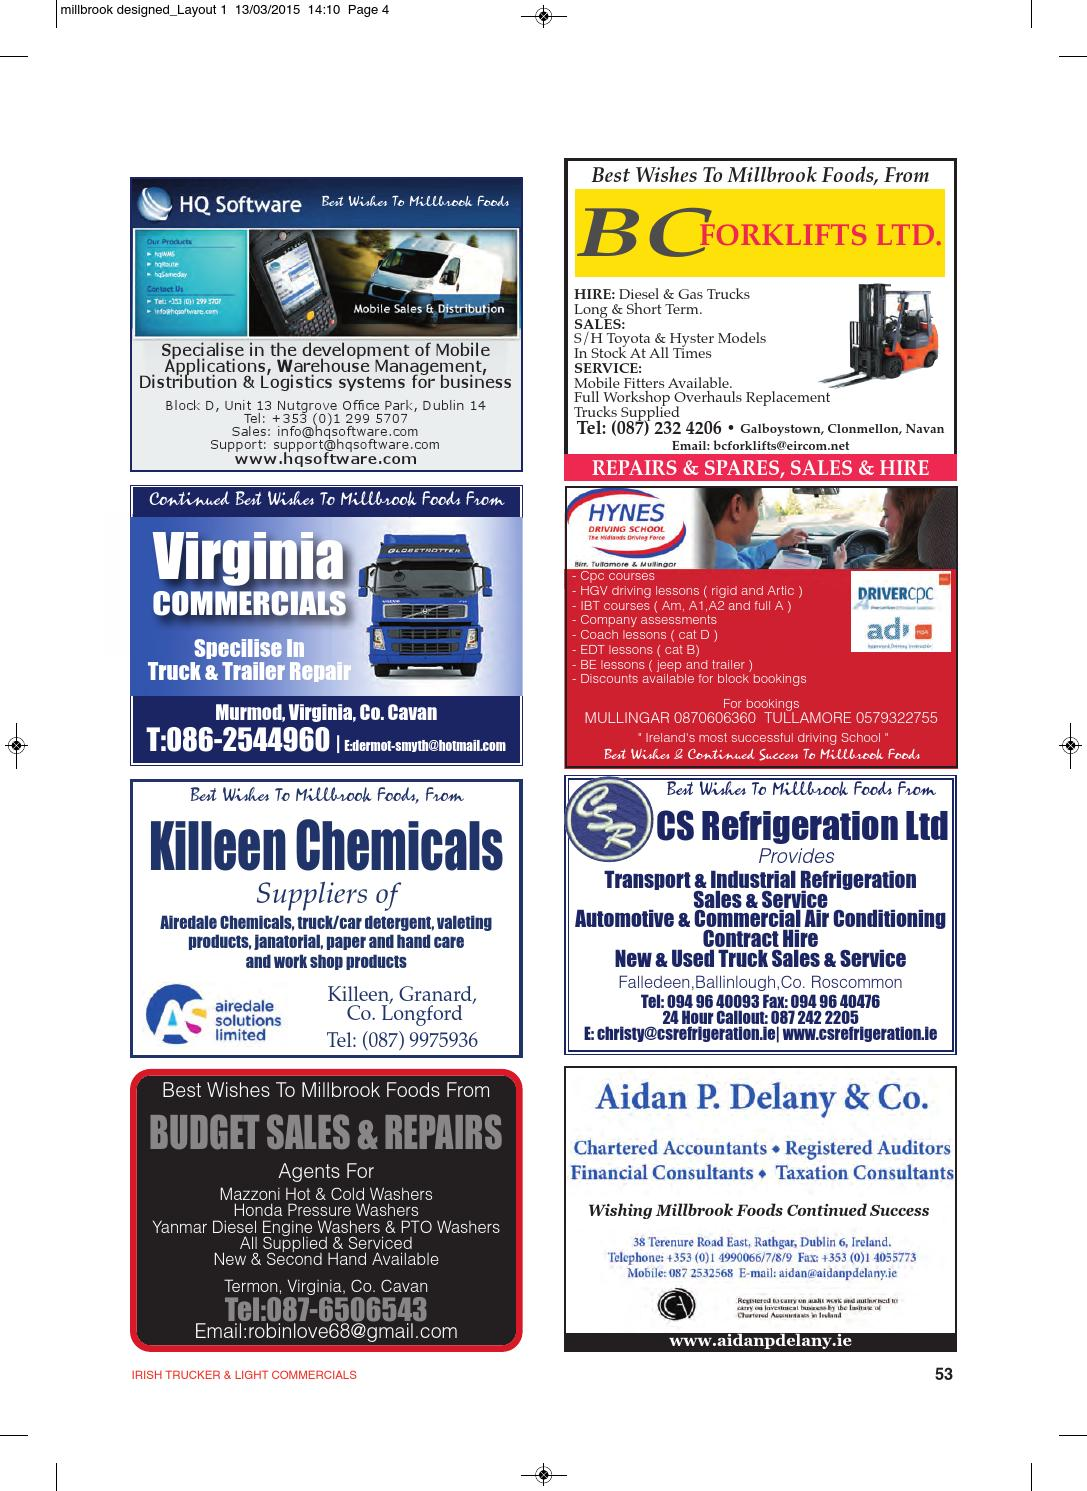 Irish Trucker Amp Light Commercials Magazine March 2015 By